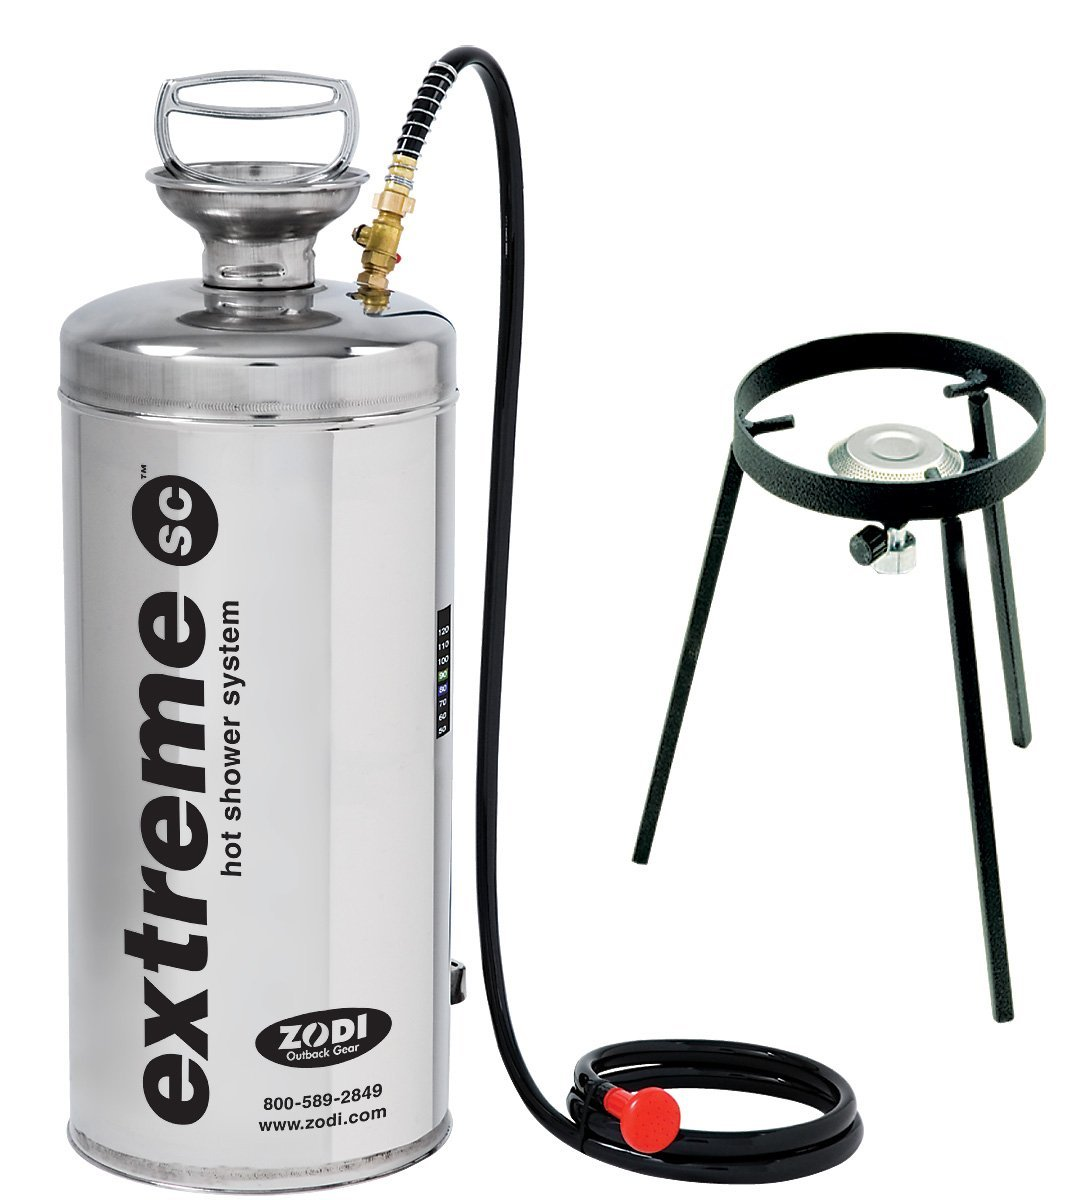 Best Portable Water Heater For Camping 5 Reviews And